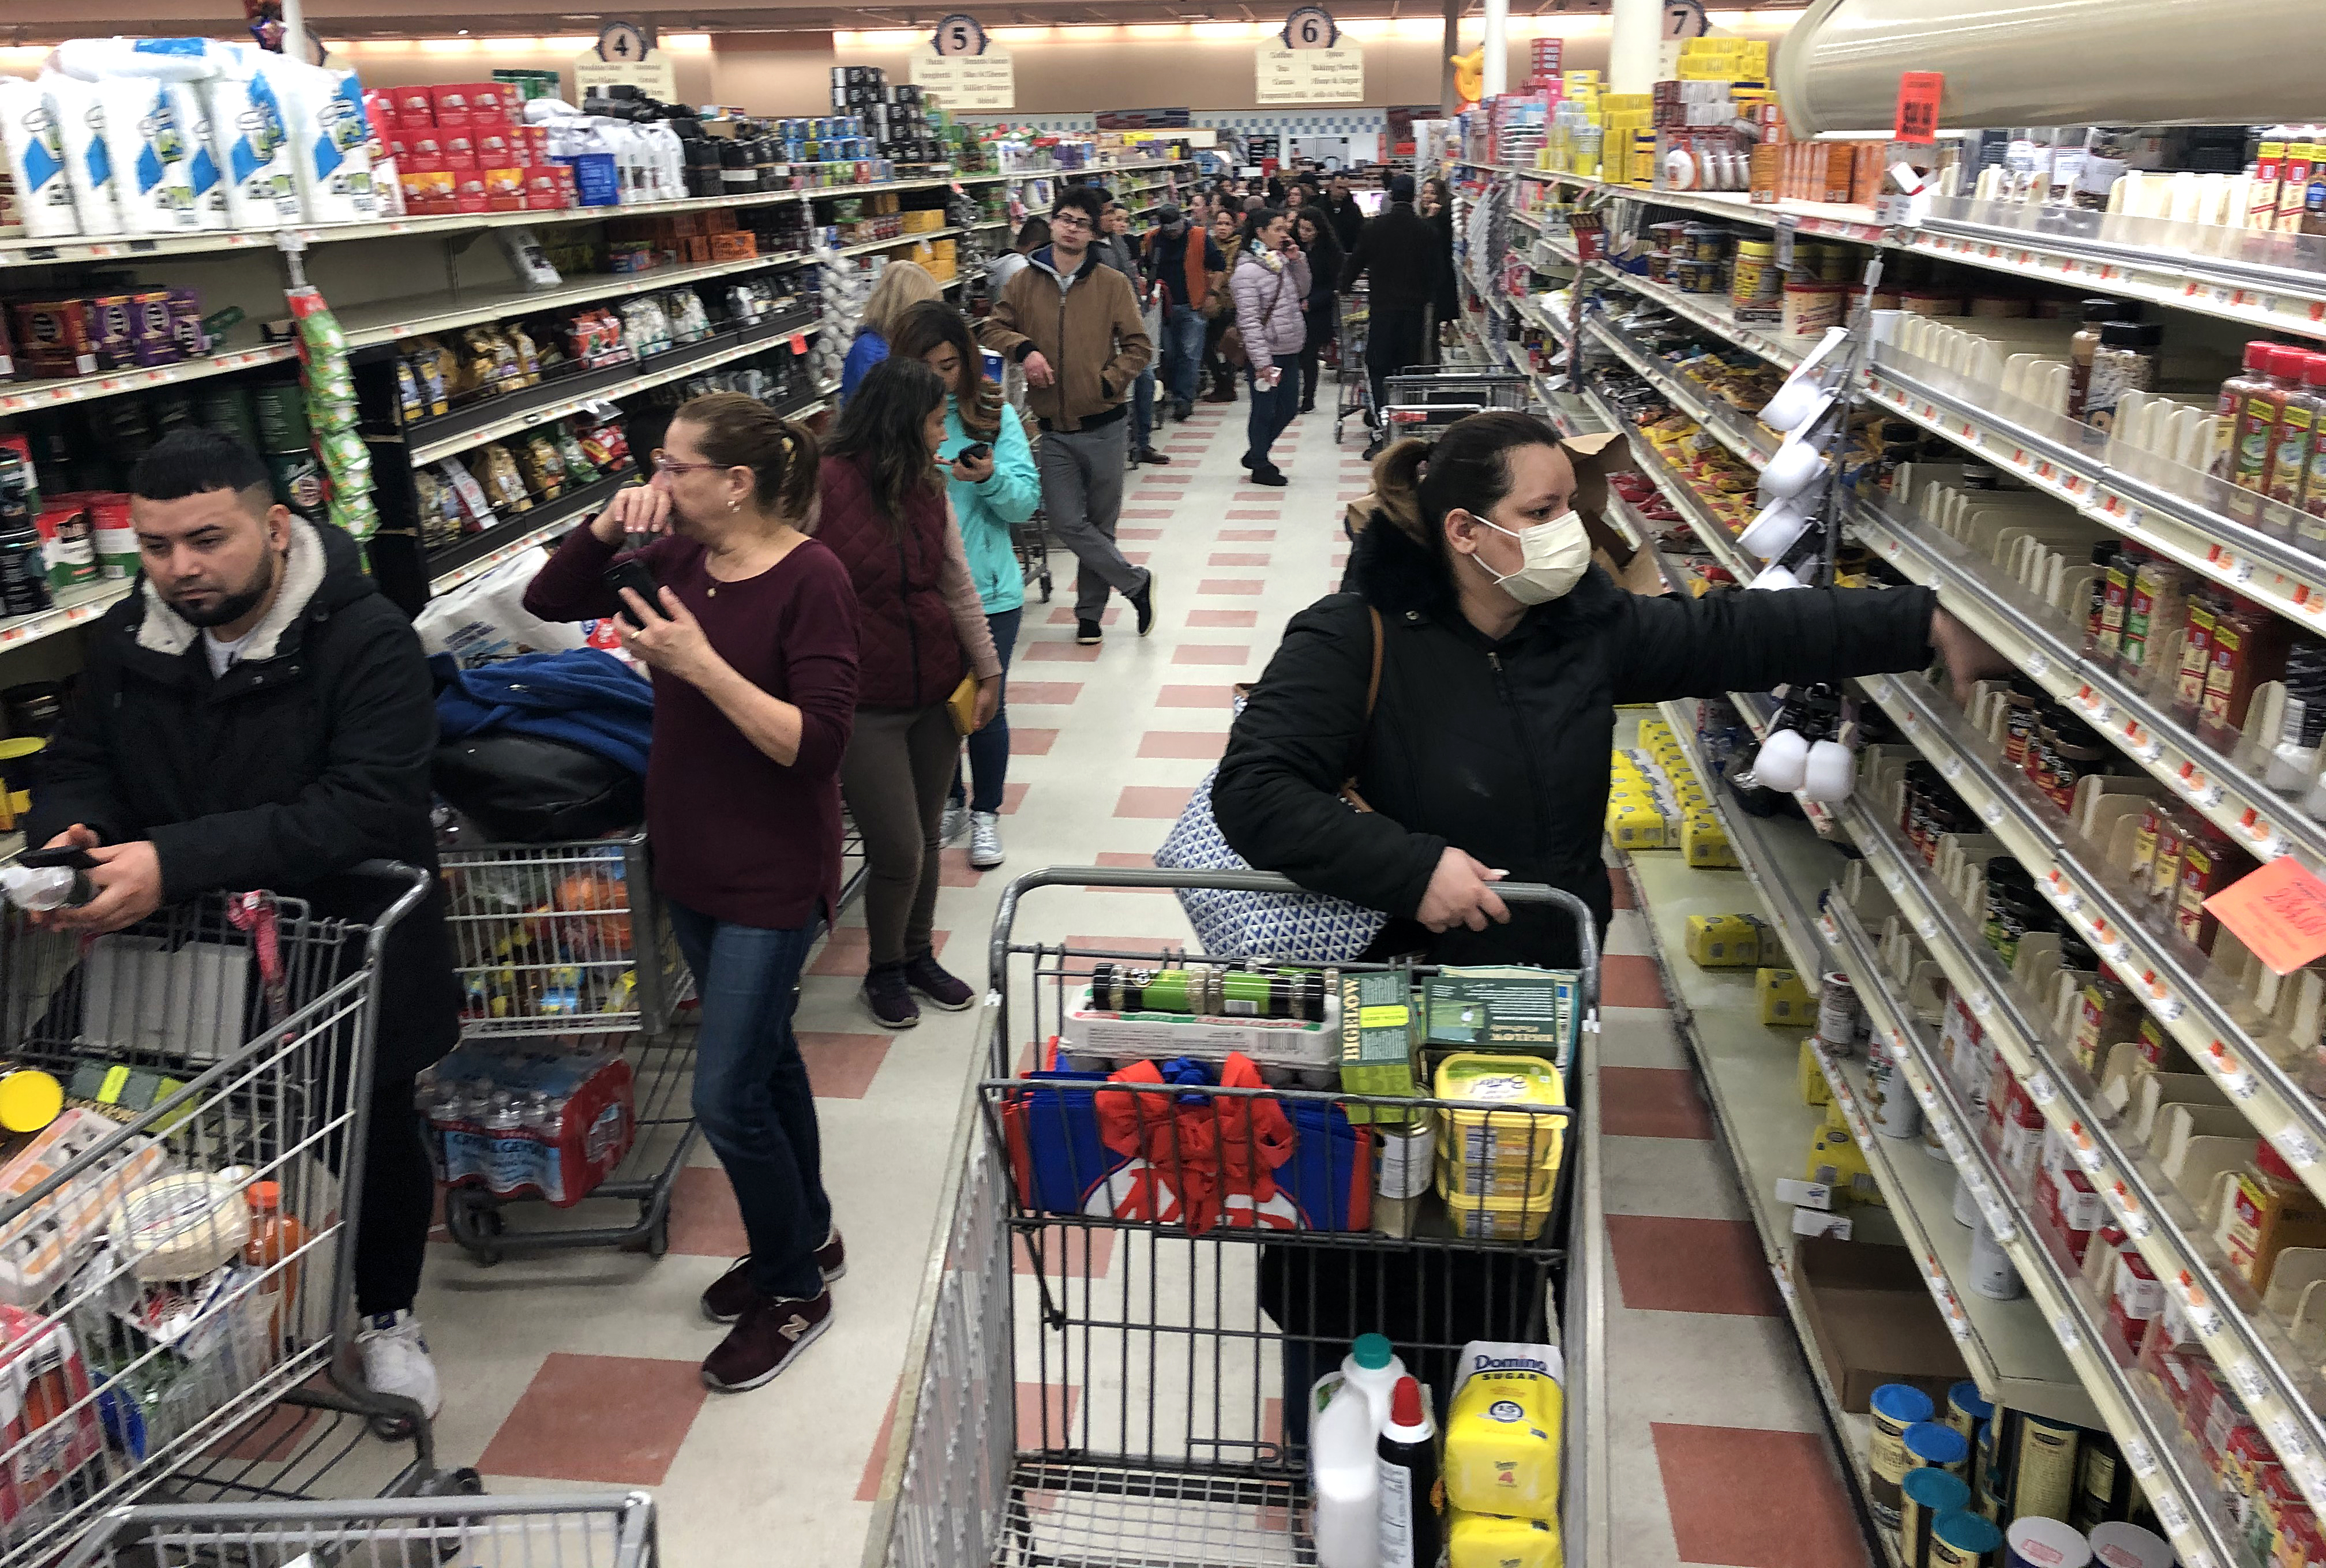 A woman in a protective mask shops as a line of shoppers stretch to the back of the store waiting to check-out at the Market Basket in Chelsea, Mass. on March 13, 2020.